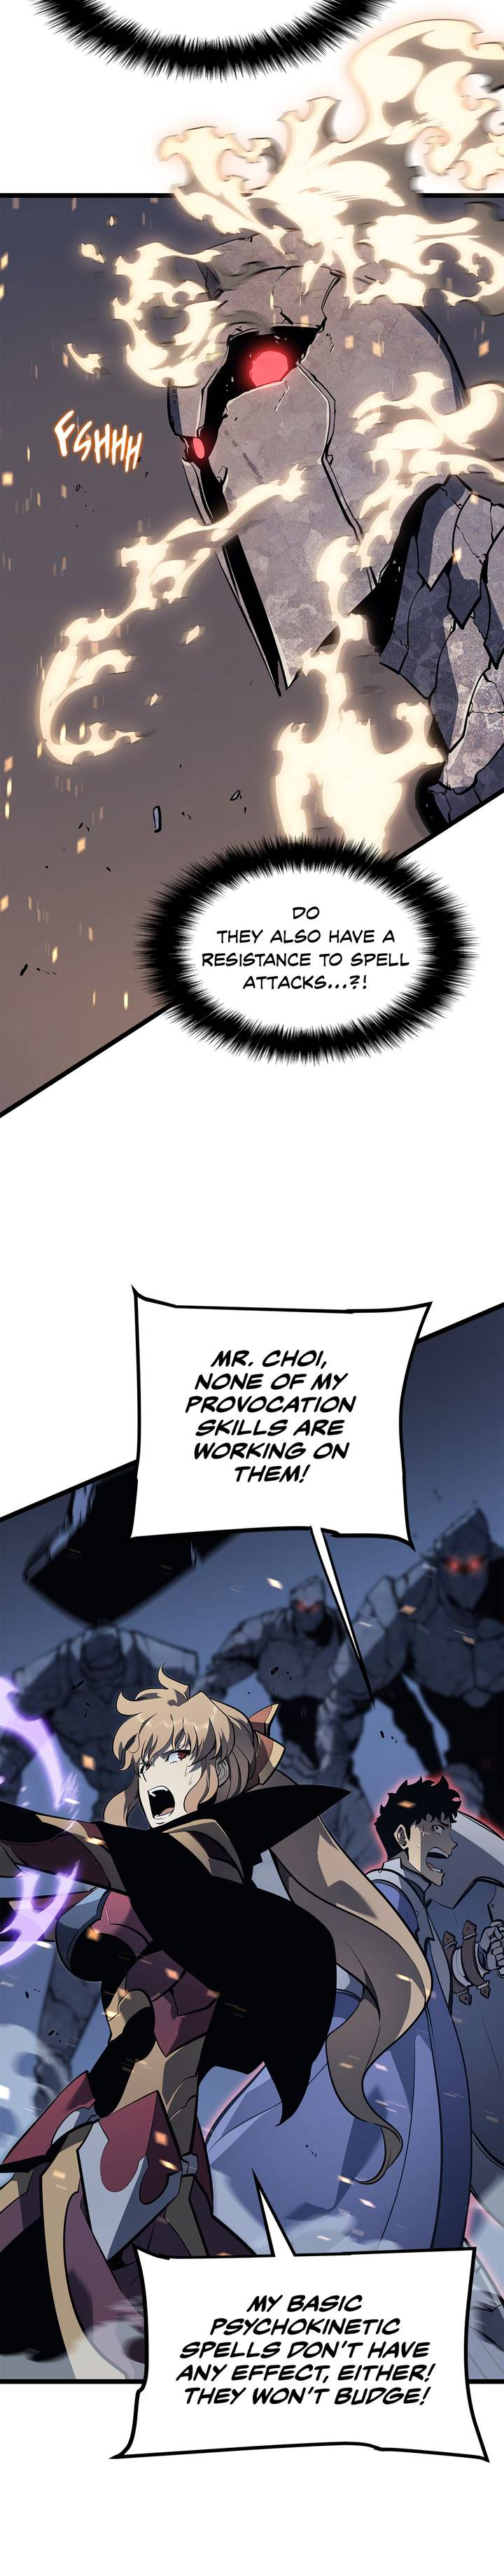 Solo Leveling Chapter 129 Page 18